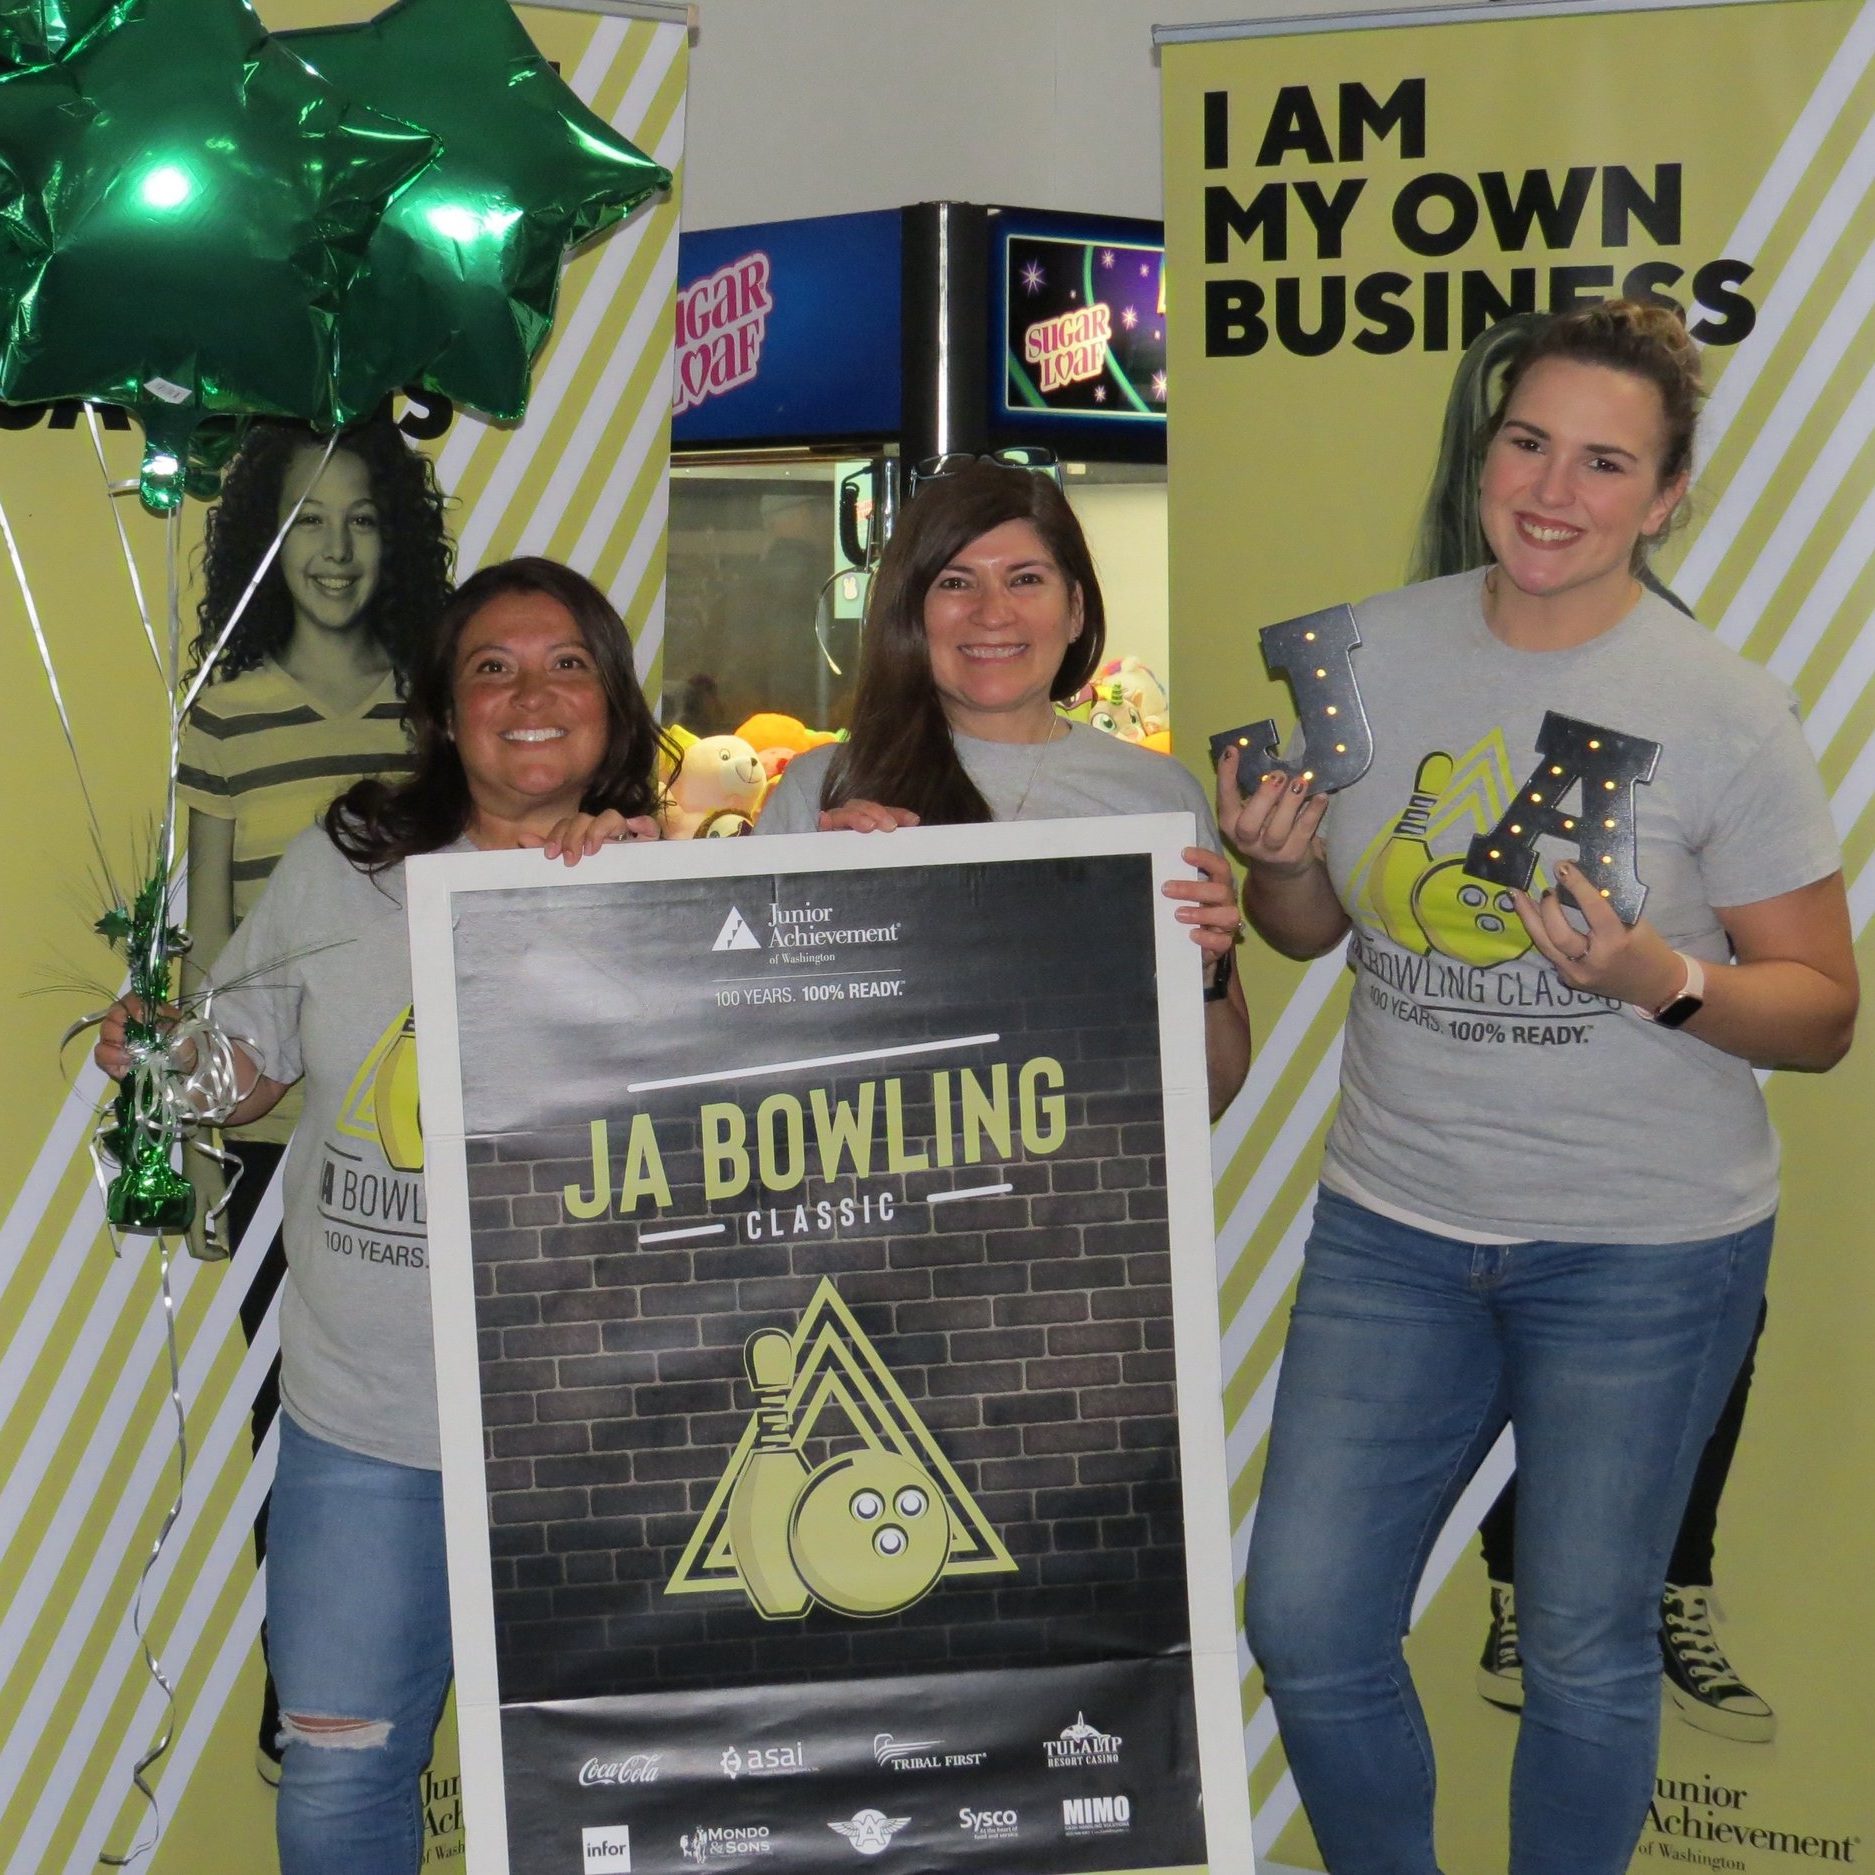 Carmen (center) at the JA Bowling Classic fundraising event